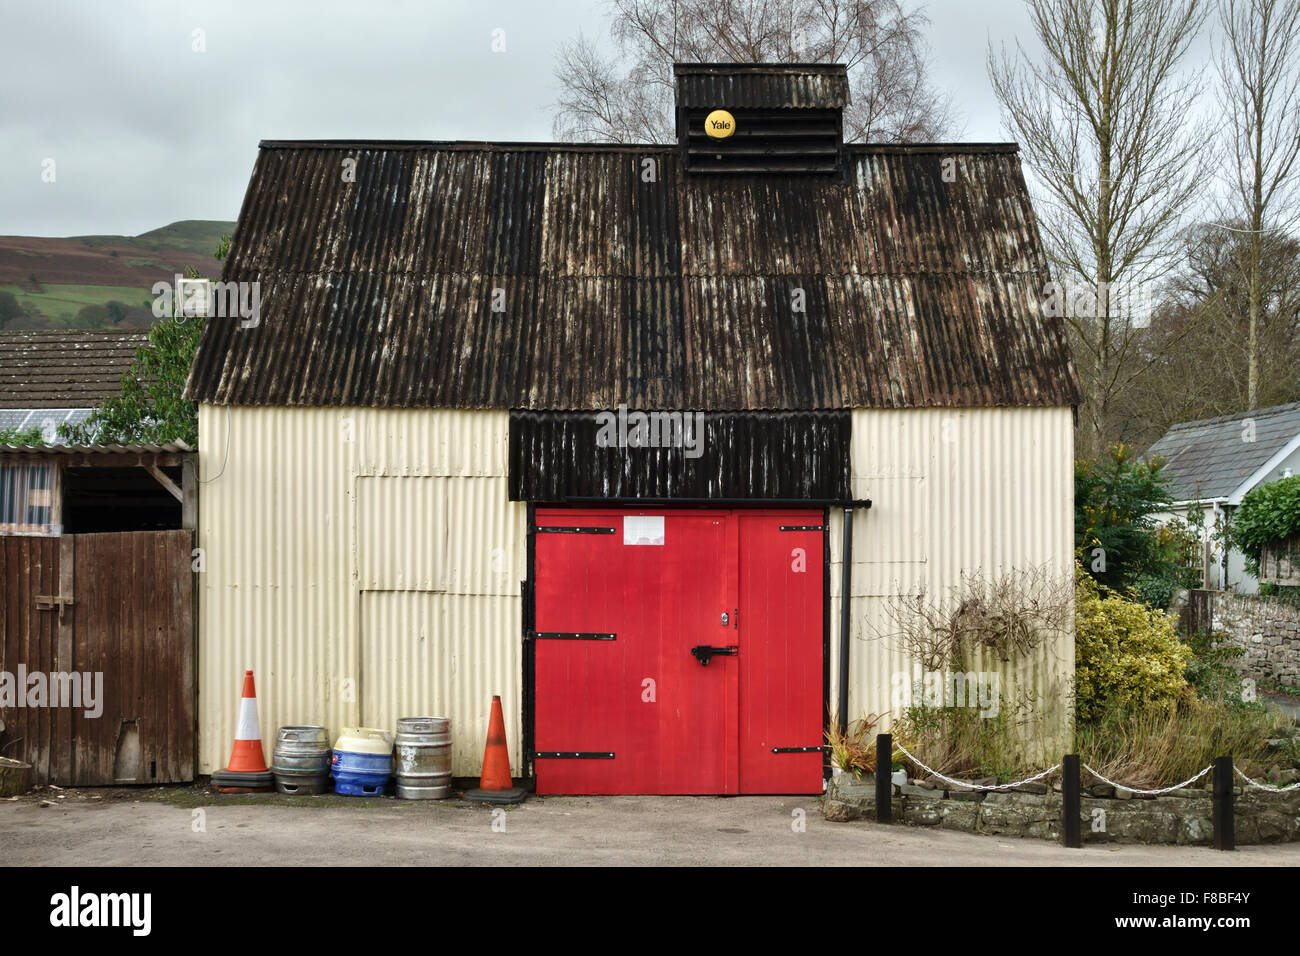 Llanbedr, mid Wales, UK. An old corrugated iron shed used as a garage - Stock Image